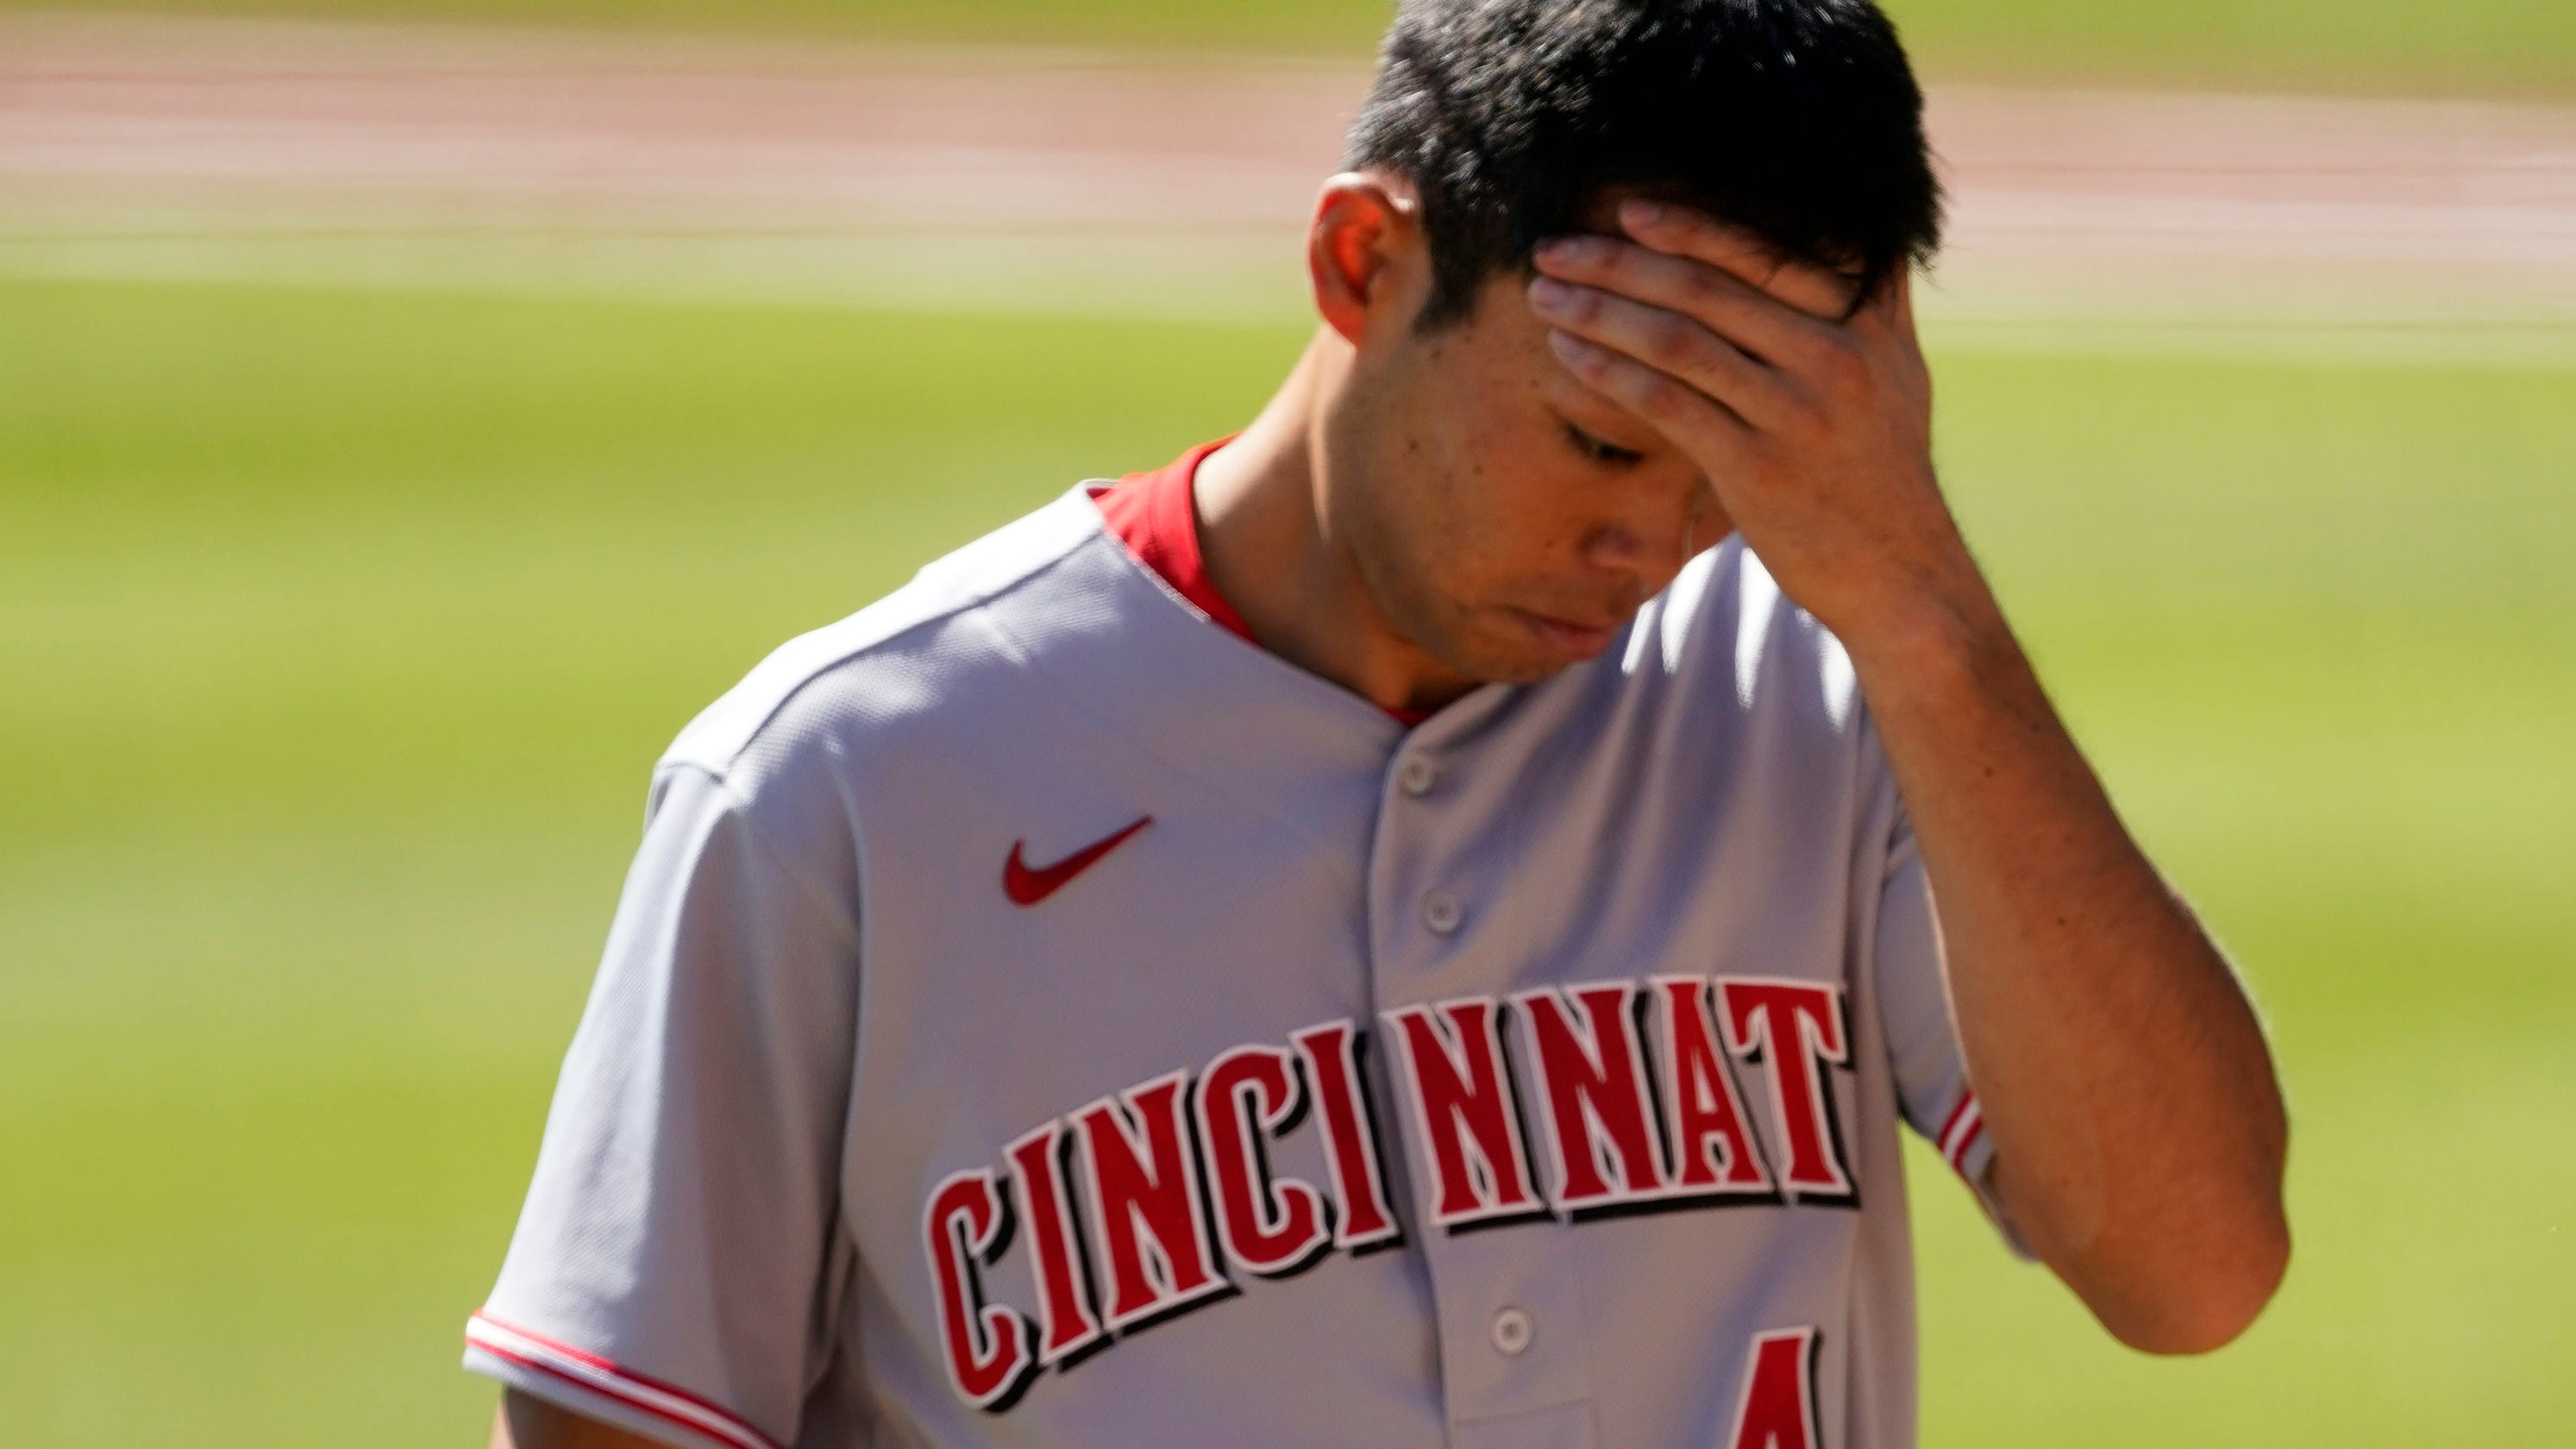 Cincinnati Reds make playoff history; eliminated by Braves with 0 runs